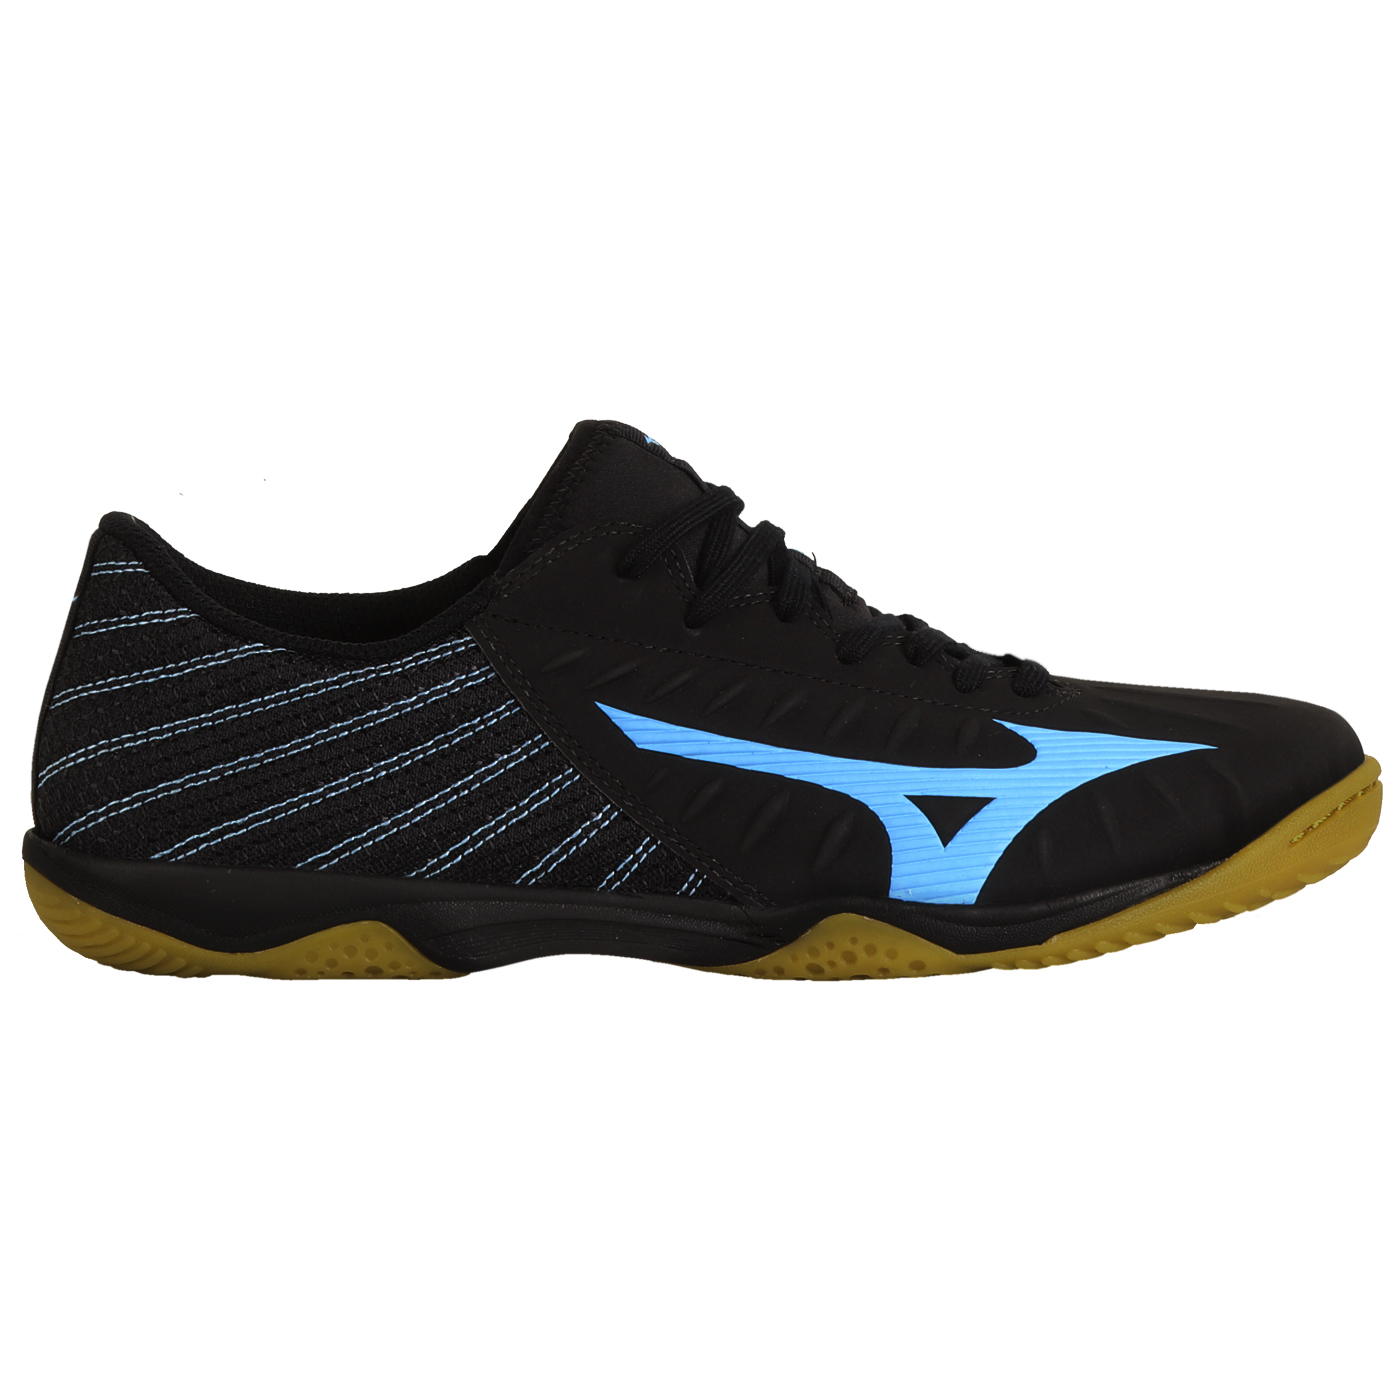 REBULA SALA PRO IN - BLACK/BLUE ATOLL/